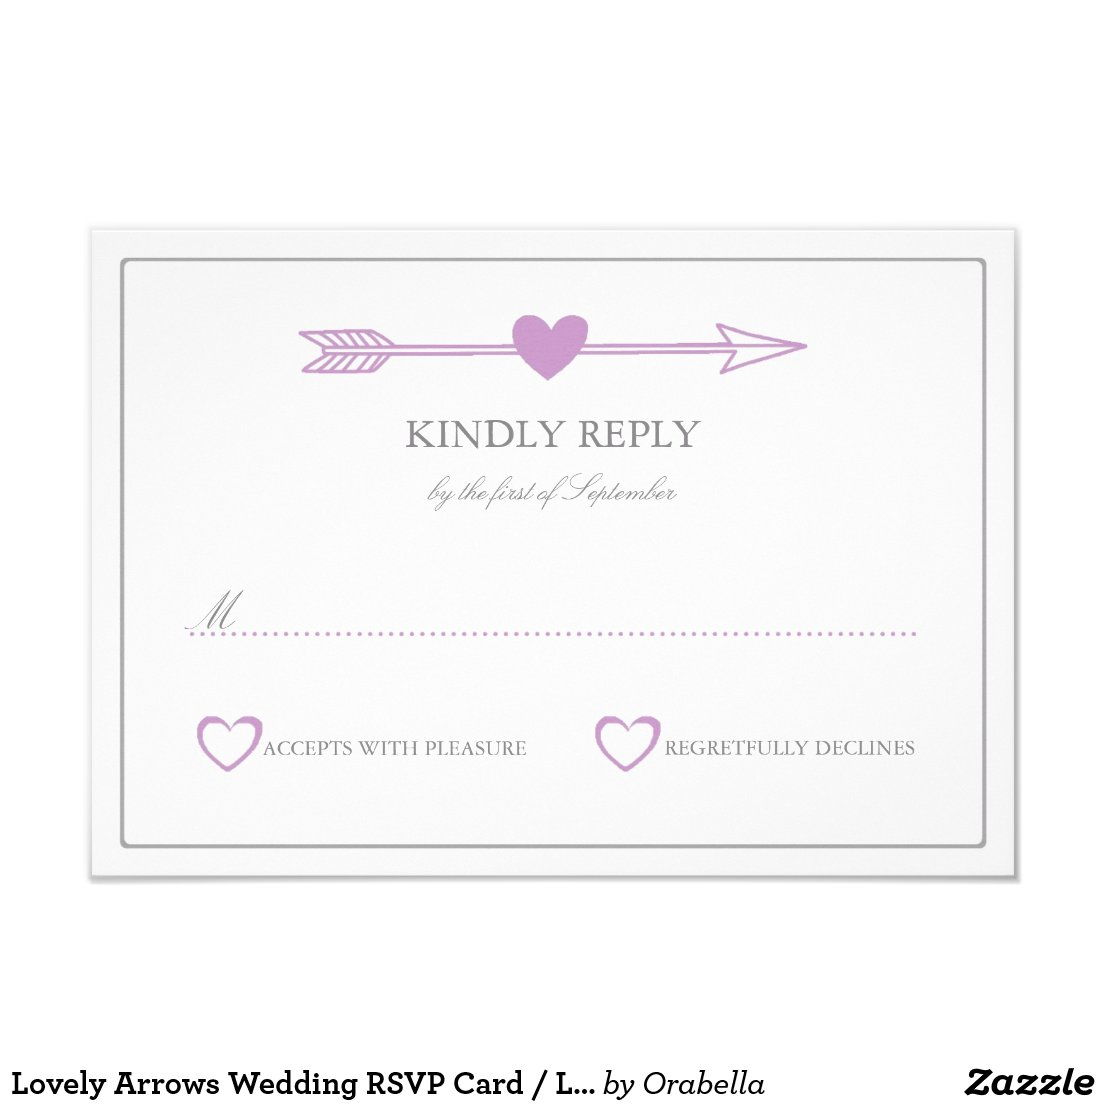 Lovely Arrows Wedding RSVP Card / Lilac and Grey